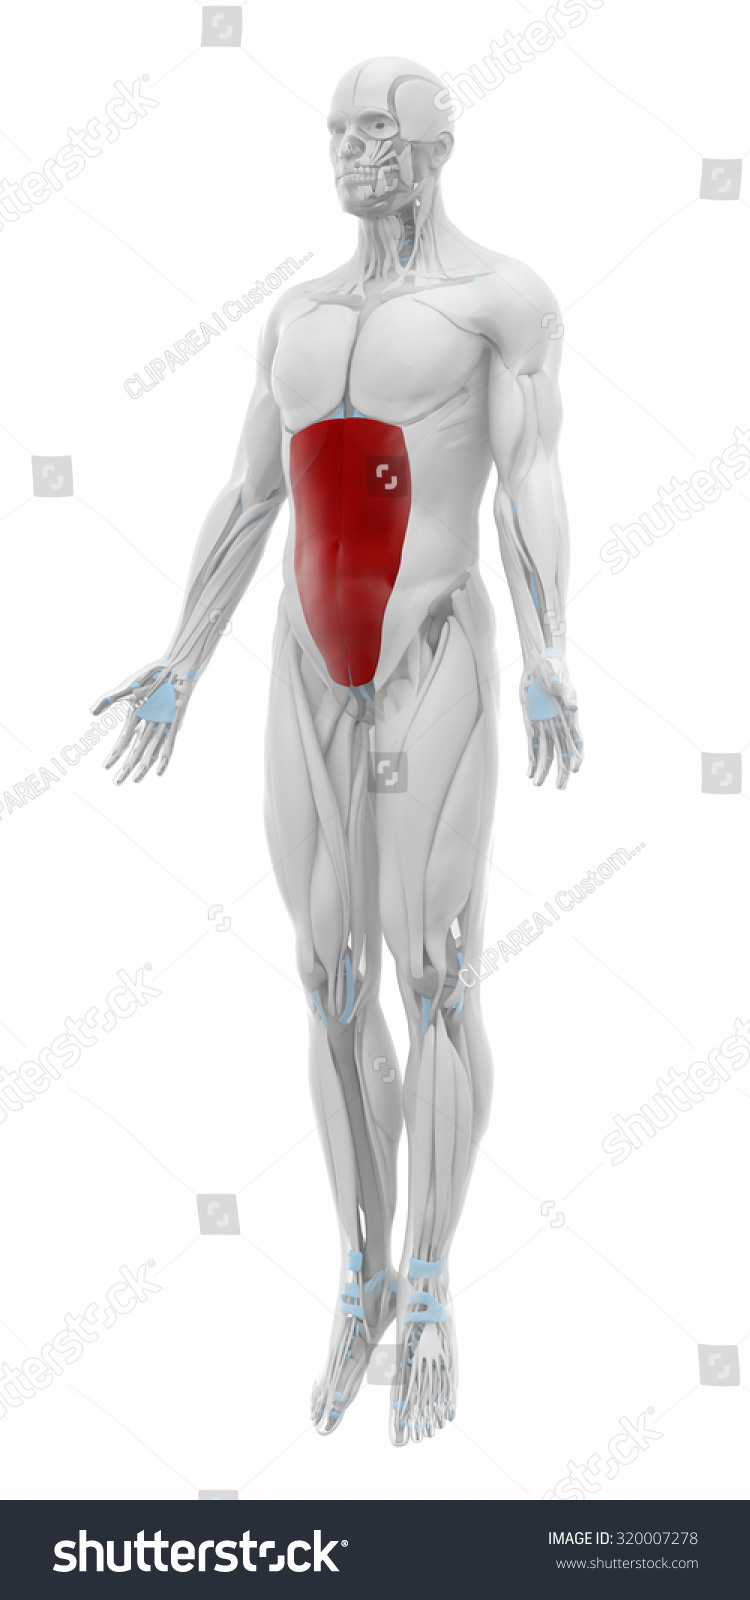 External Abdominal Oblique Muscles Anatomy Map Stock Illustration